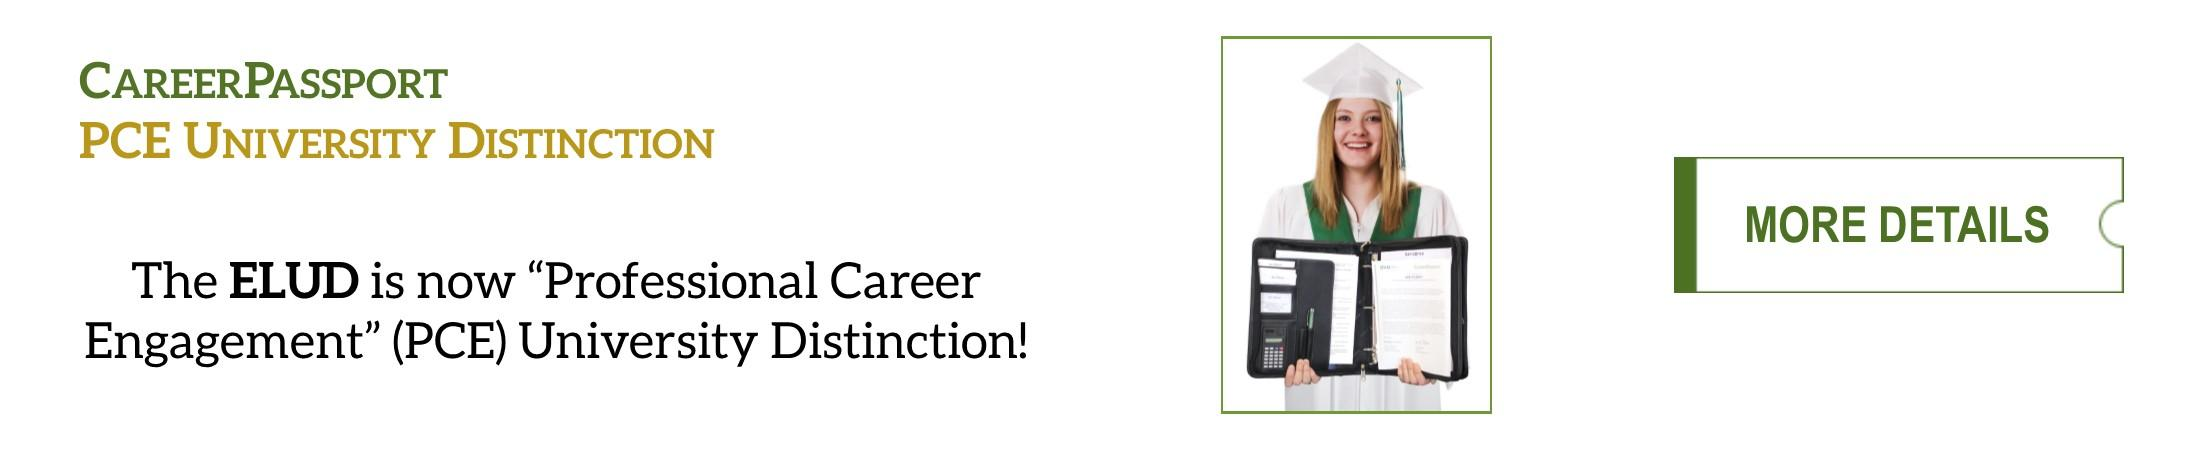 "The ELUD is now the ""Professional Career Engagement"" (PCE) University Distinction! Click for more details."